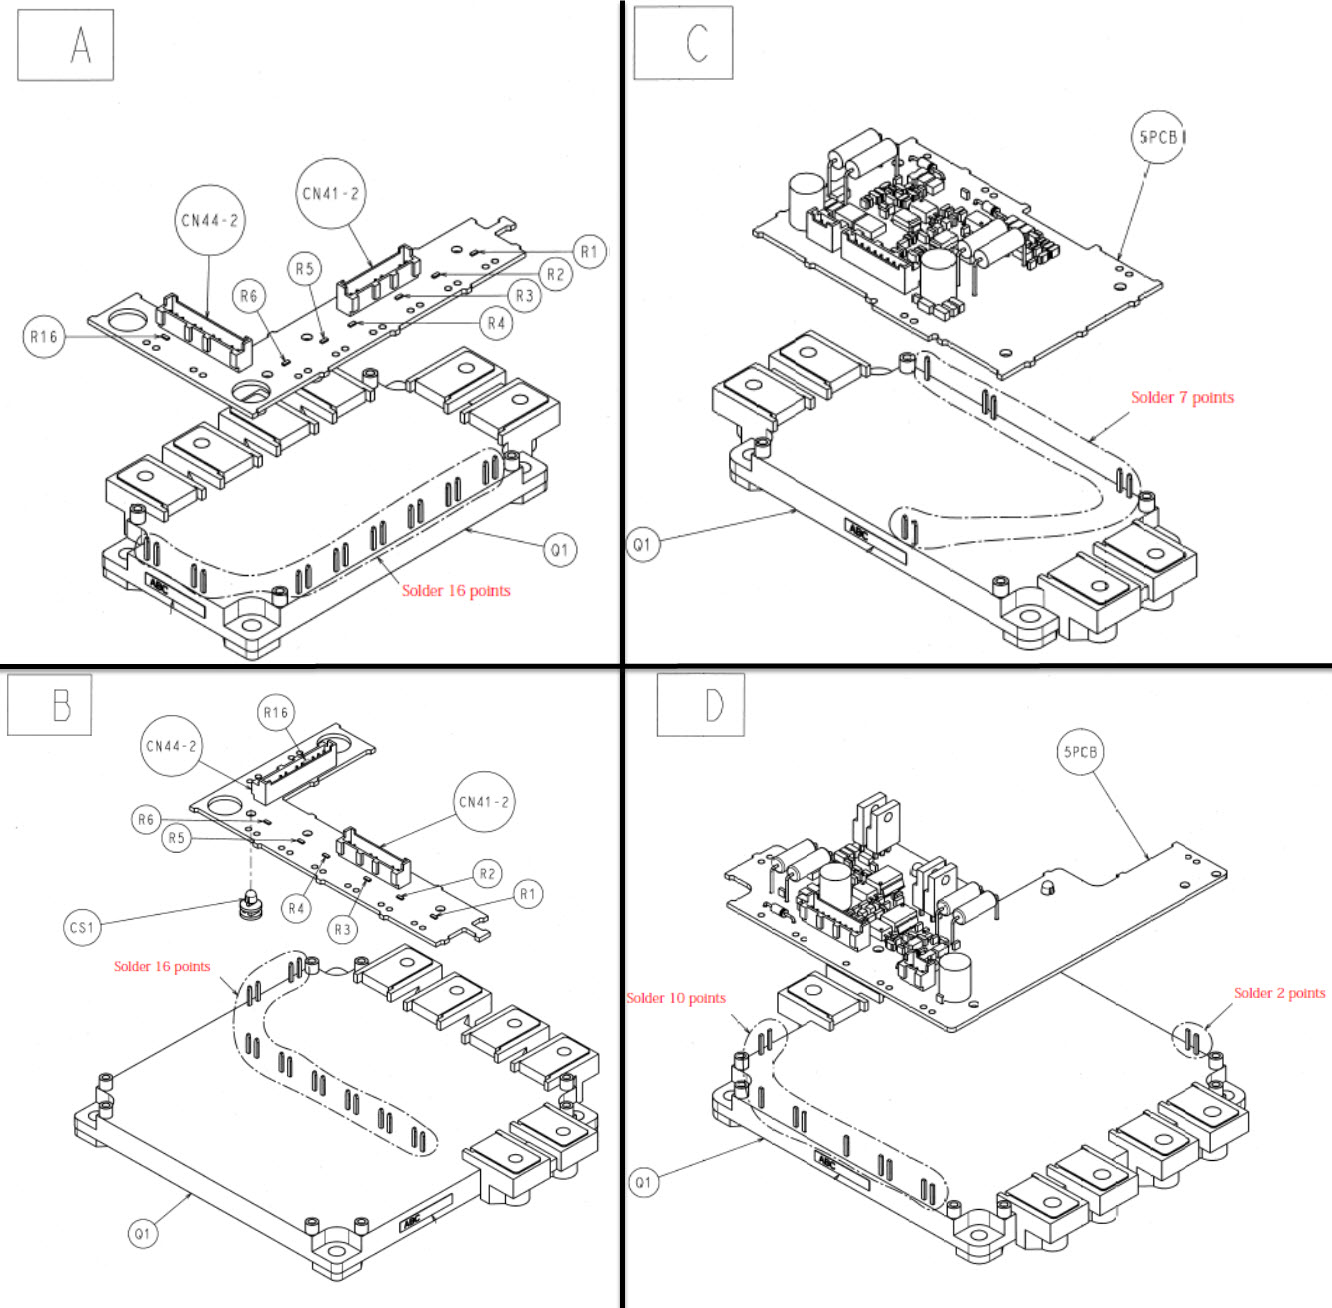 IGBT and Sub Gate Drive Kit Assembly for P1000, A1000 and